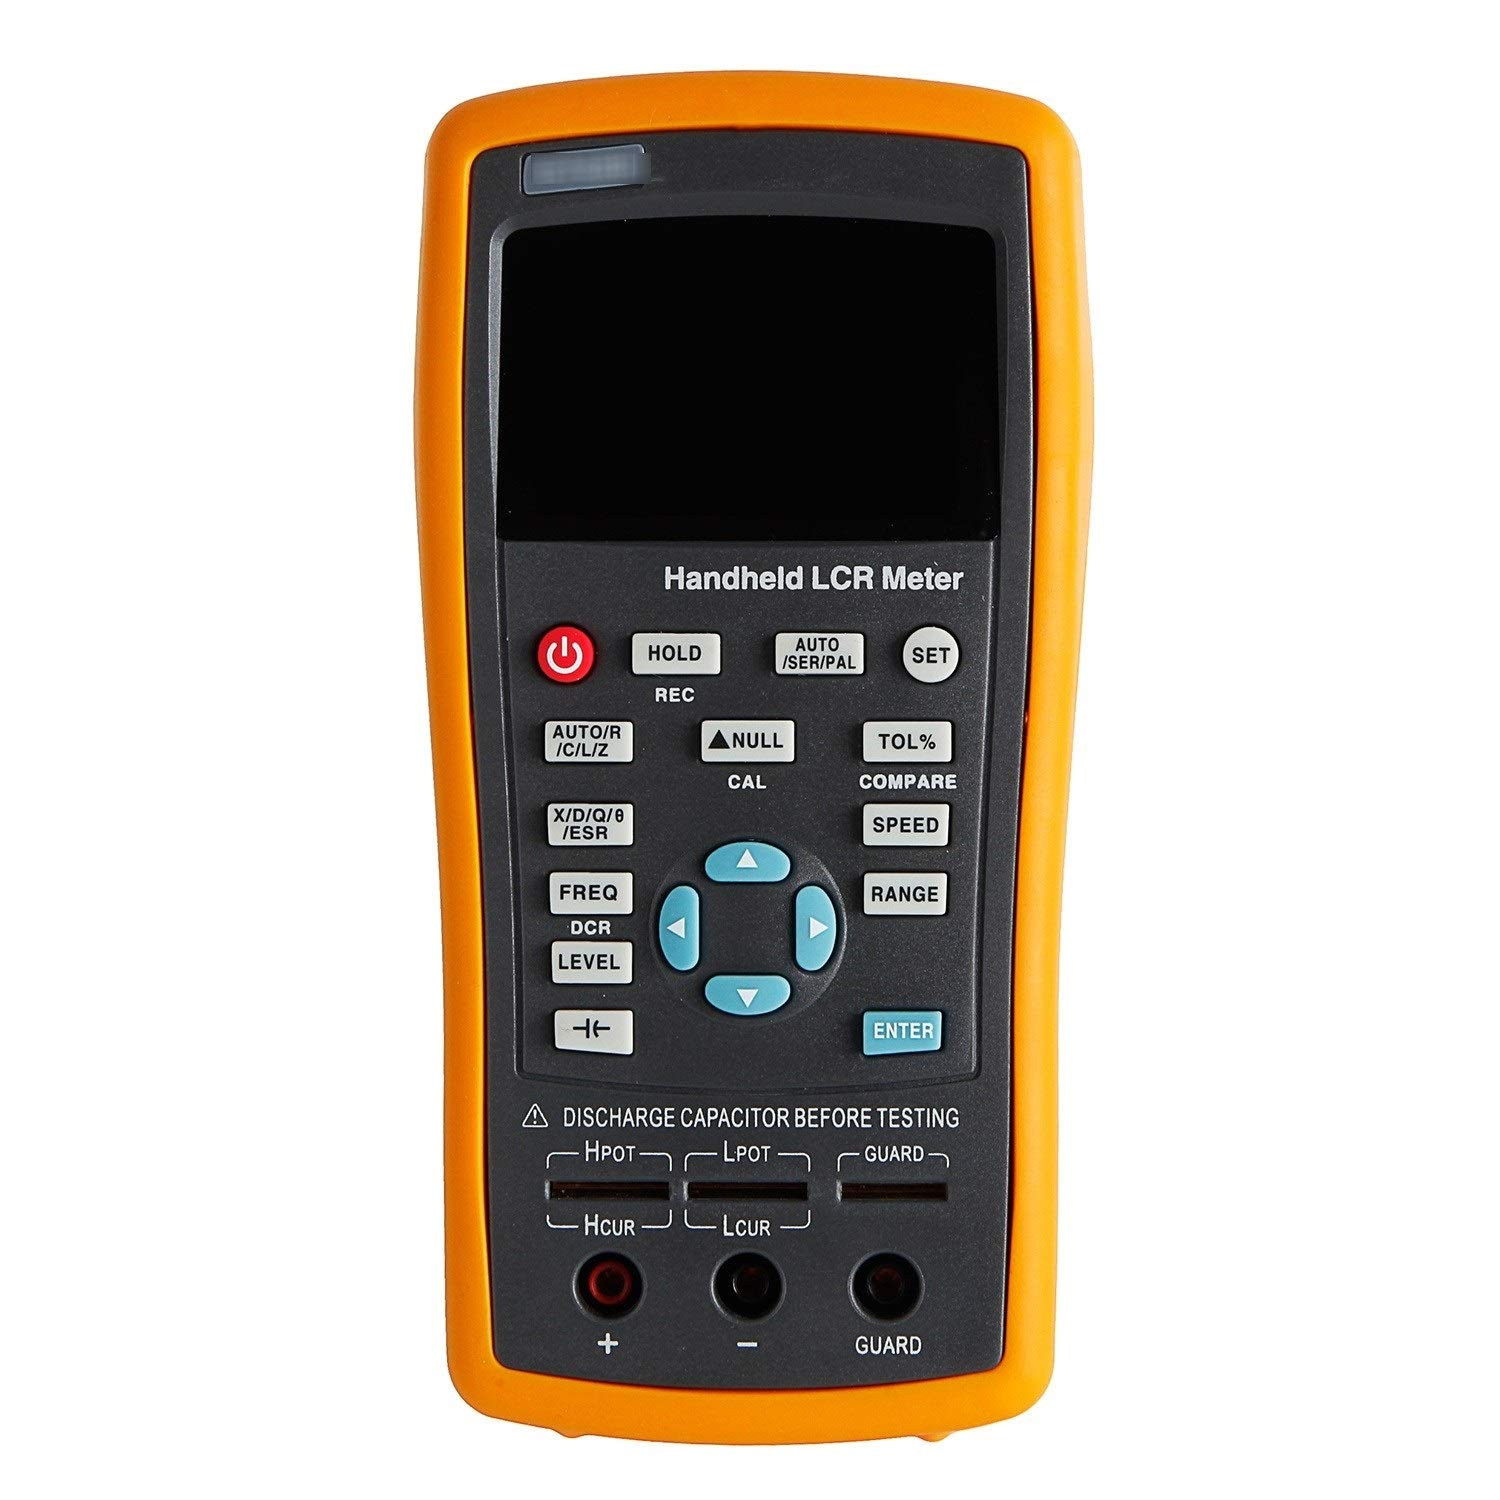 Durable Digital LCR Bridge Handheld LCR LCR Meter with Backlight Display ET430 + 0.2% Accuracy, Resistance Electrolytic Capacitance Measuring Handheld LCR Bridge Precise